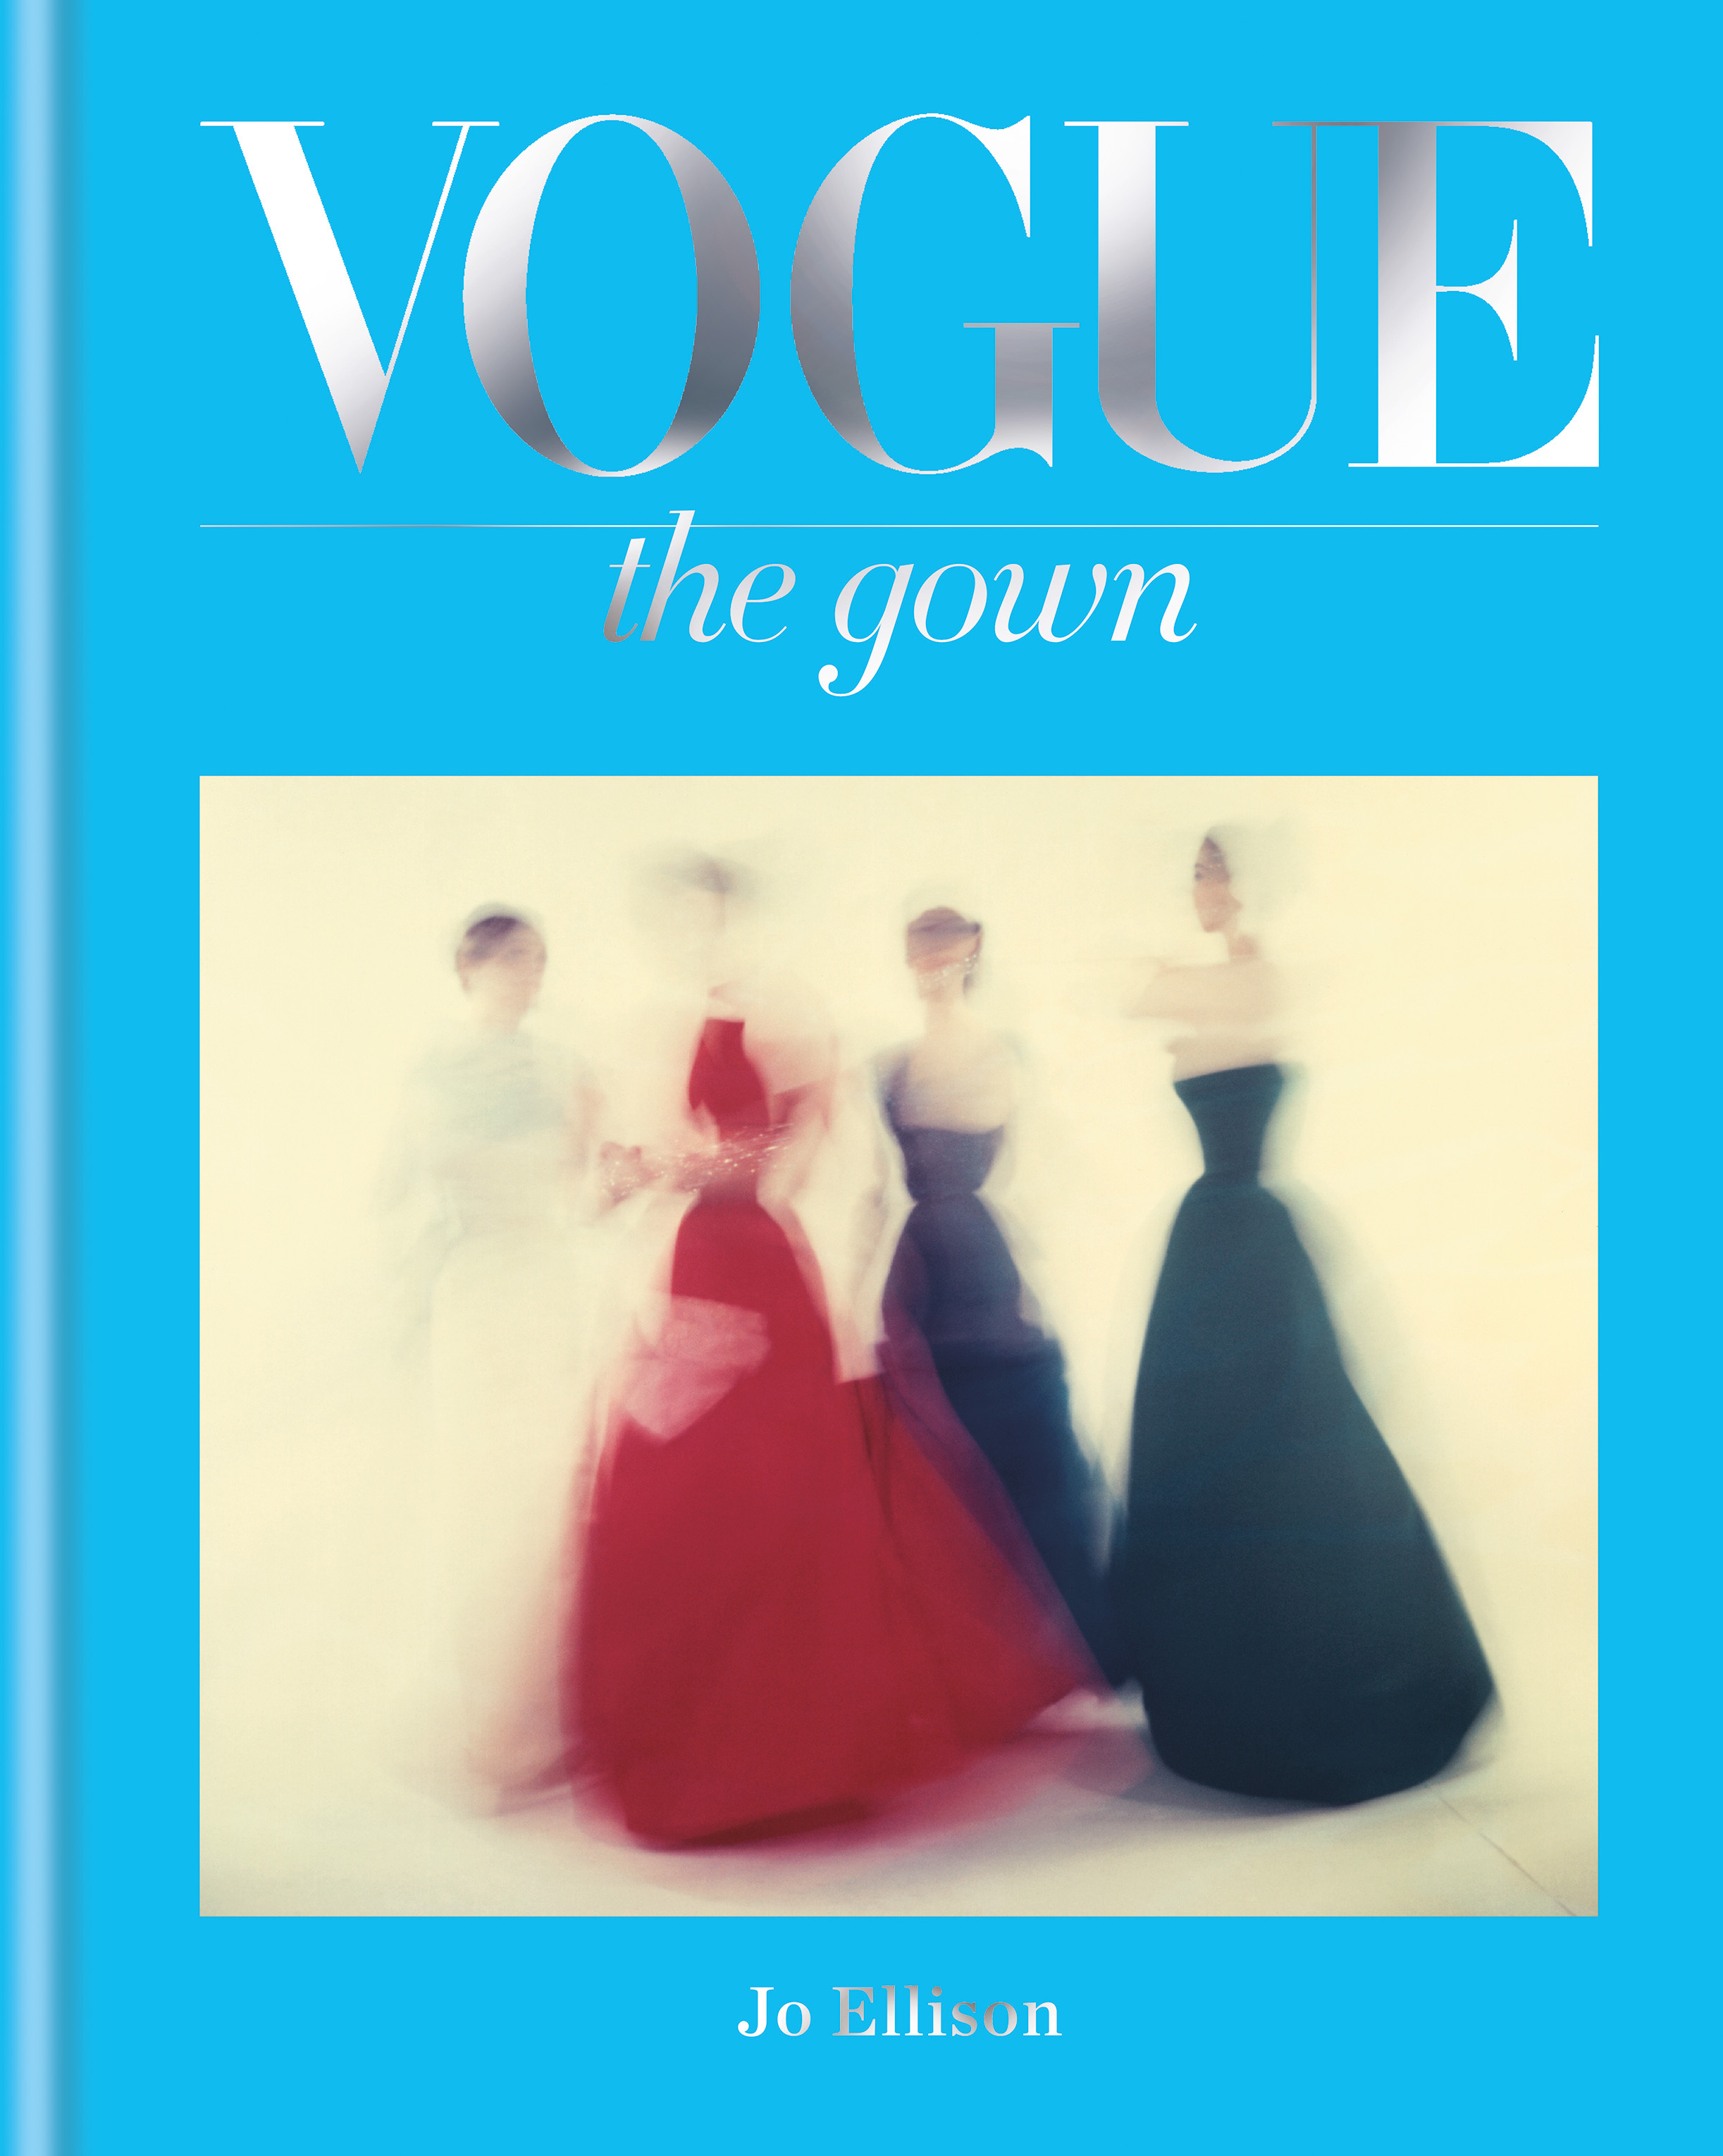 Vogue: The Gown by Jo Ellison, ISBN: 9781840917642